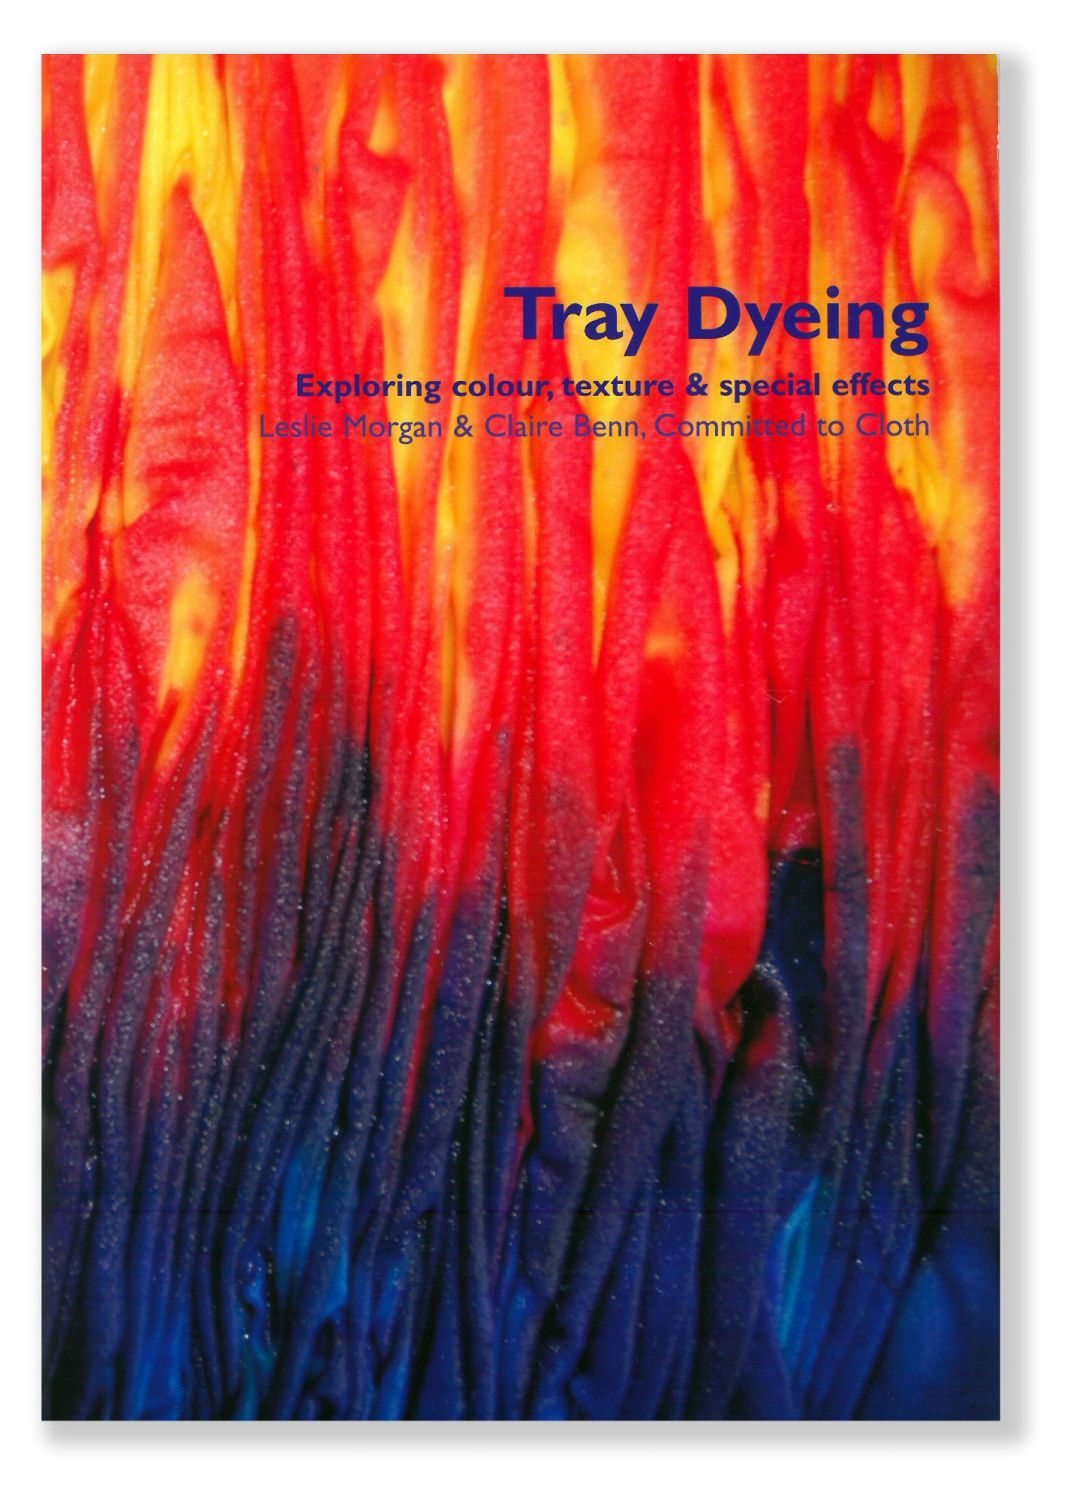 Tray Dyeing: Exploring Colour, Texture and Special Effects by Leslie Morgan